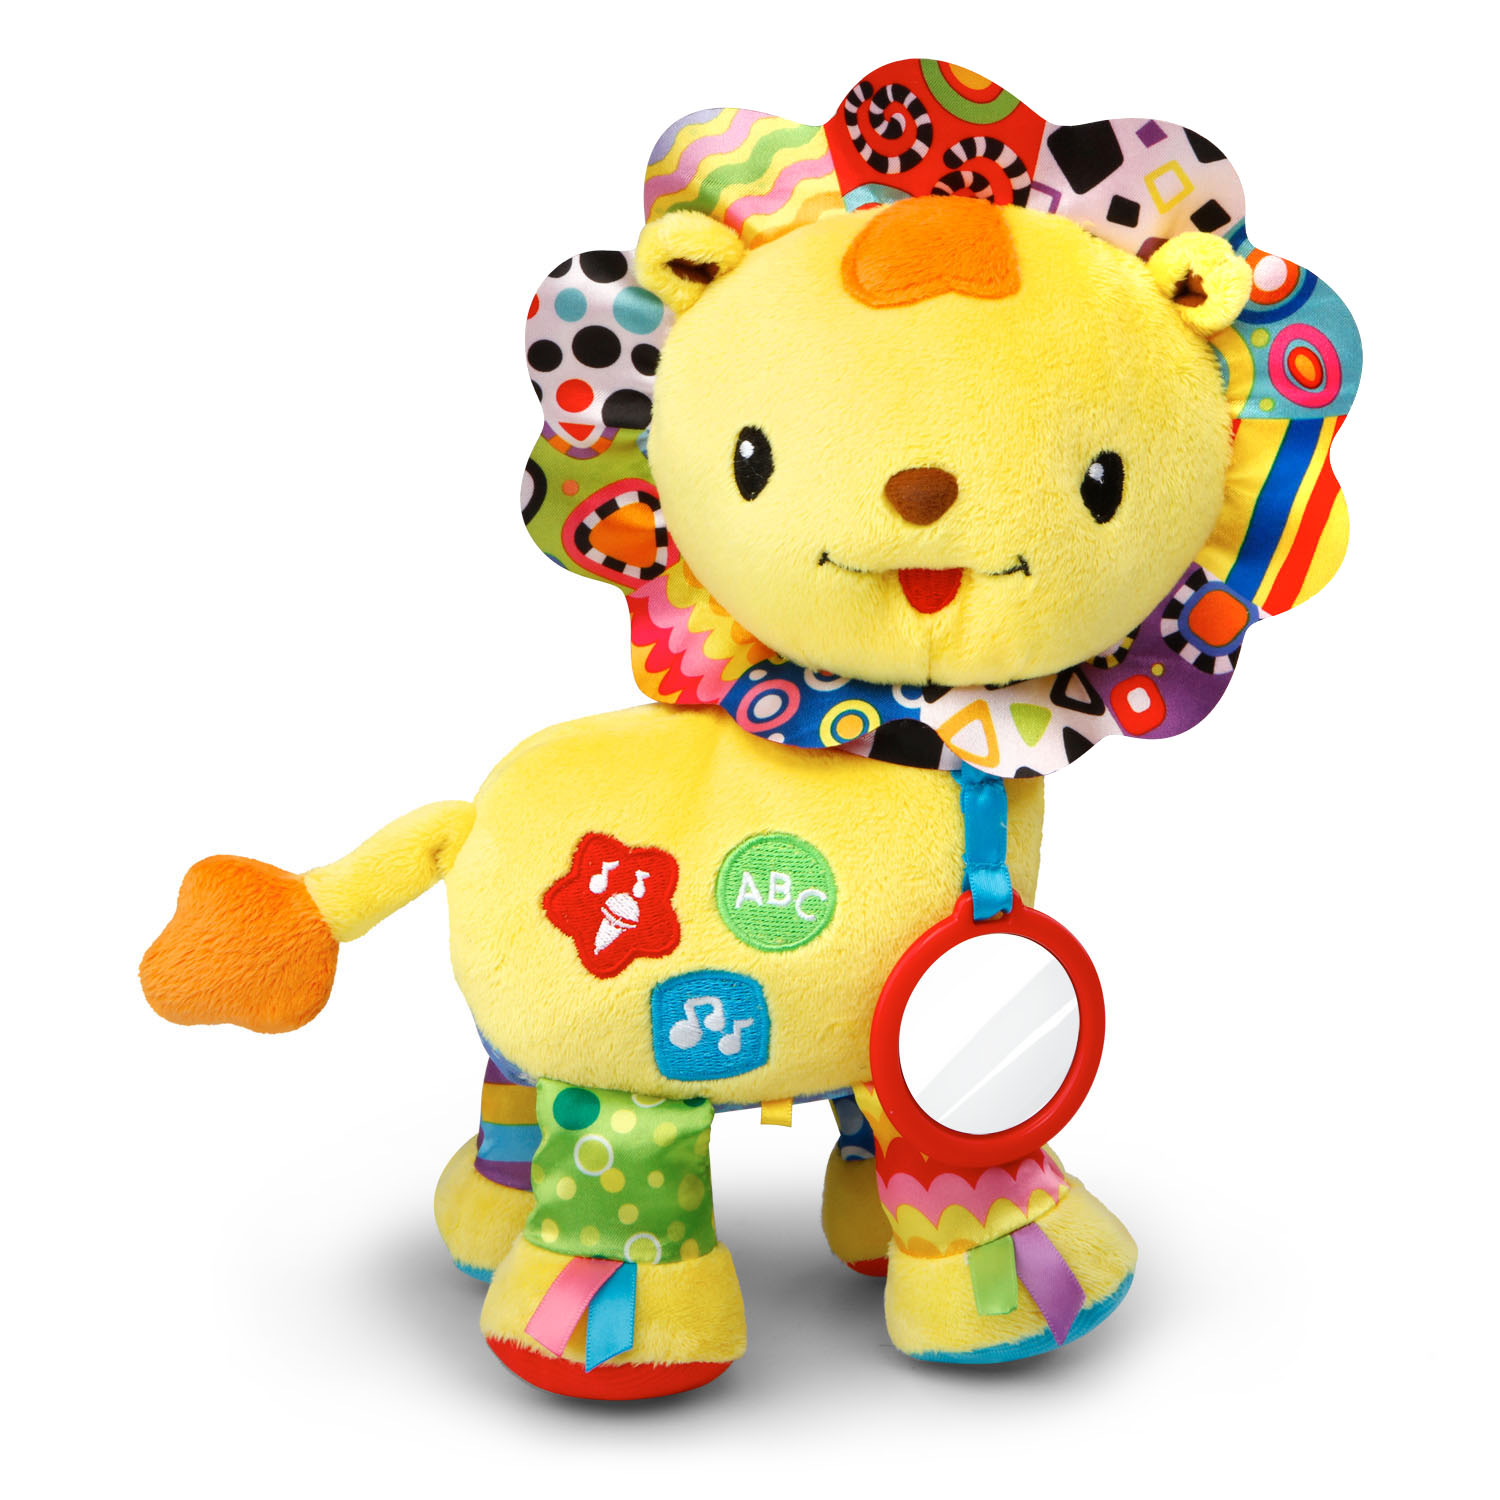 VTech Crinkle & Roar Lion With Crinkly Feet, Ribbon Tags and Mirror